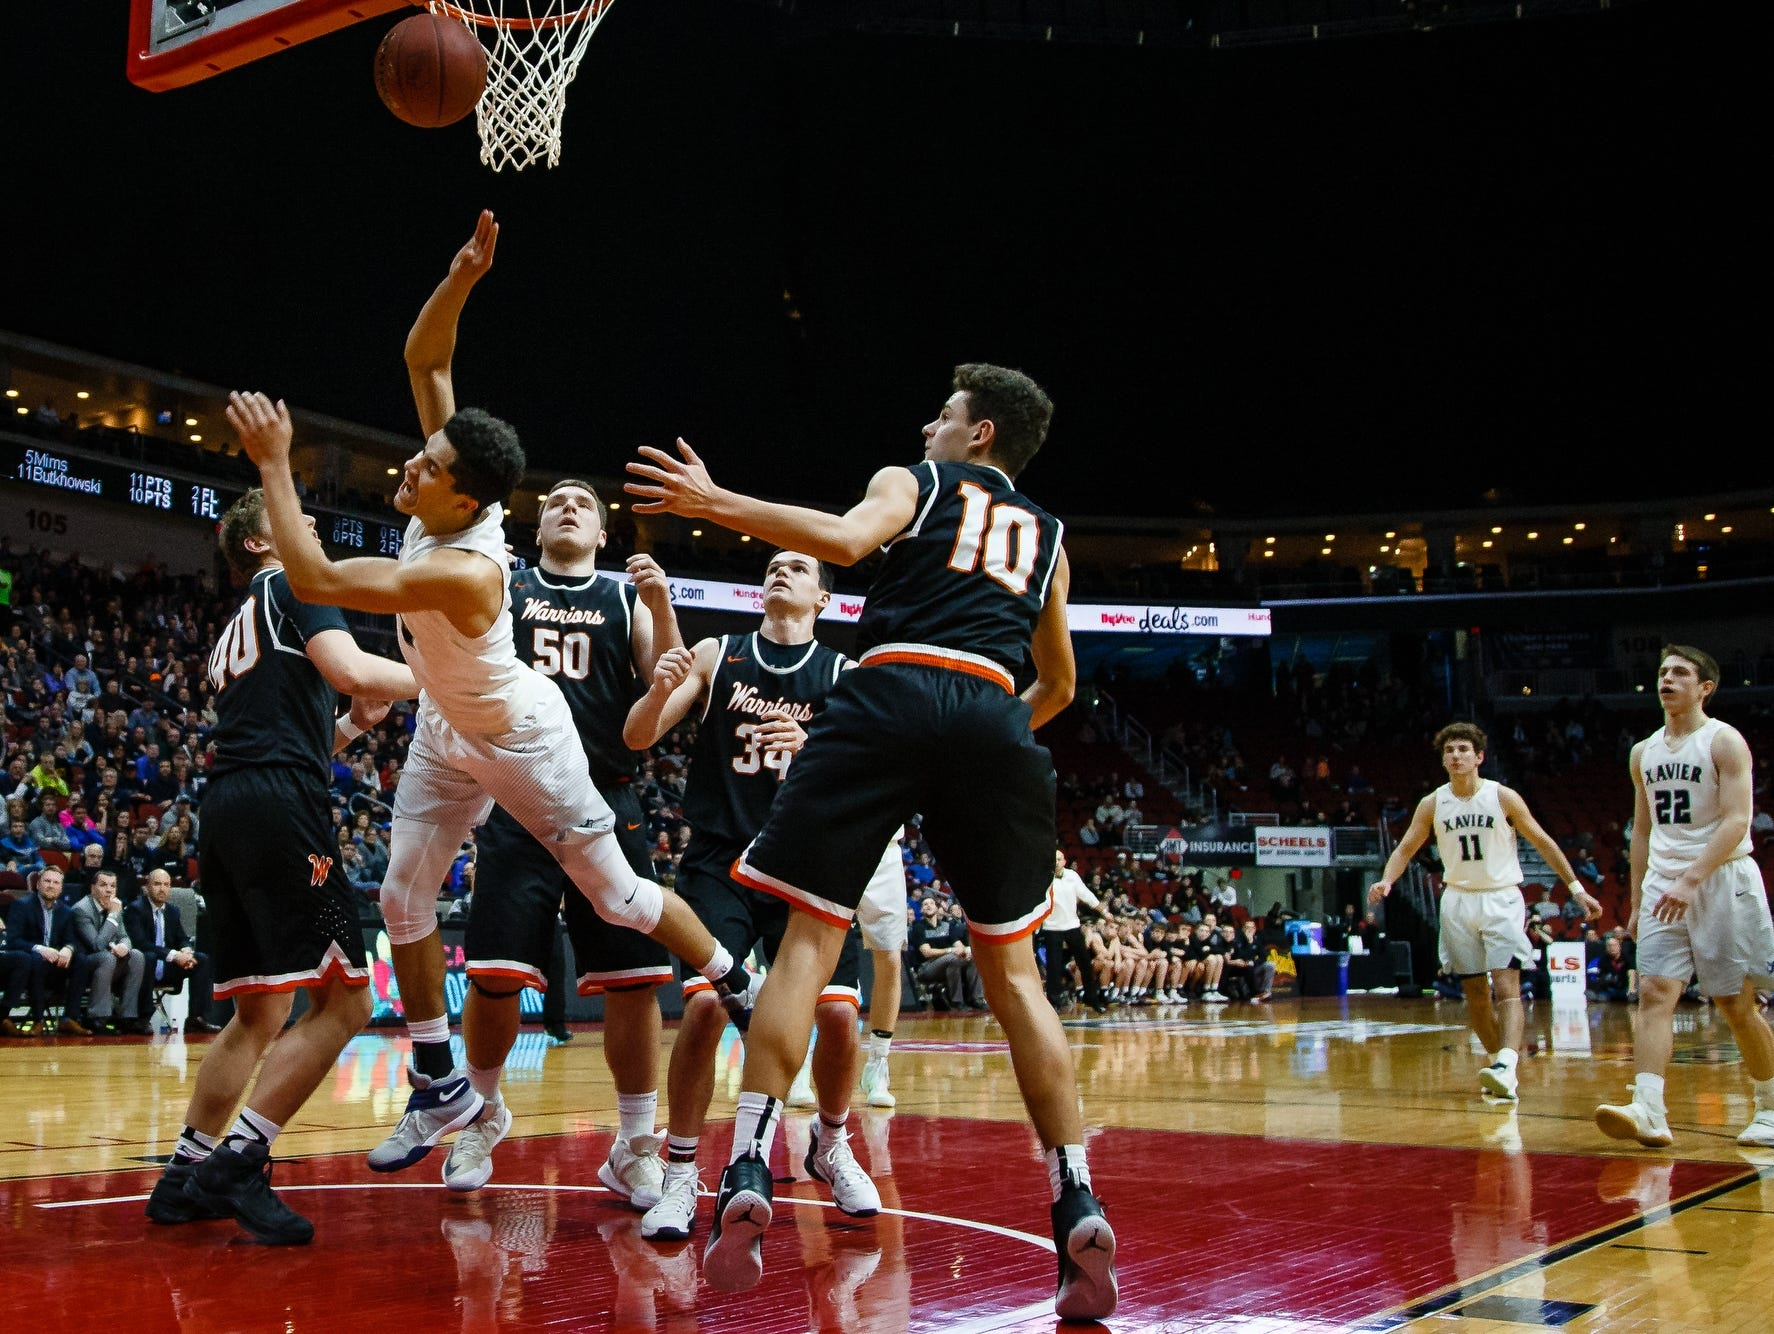 Cedar Rapids, Xavier's Matthew Mims (5) is fouled during their 3A state basketball championship game on Saturday, March 11, 2017, in Des Moines. Cedar Rapids, Xavier would go on to win 54-49.